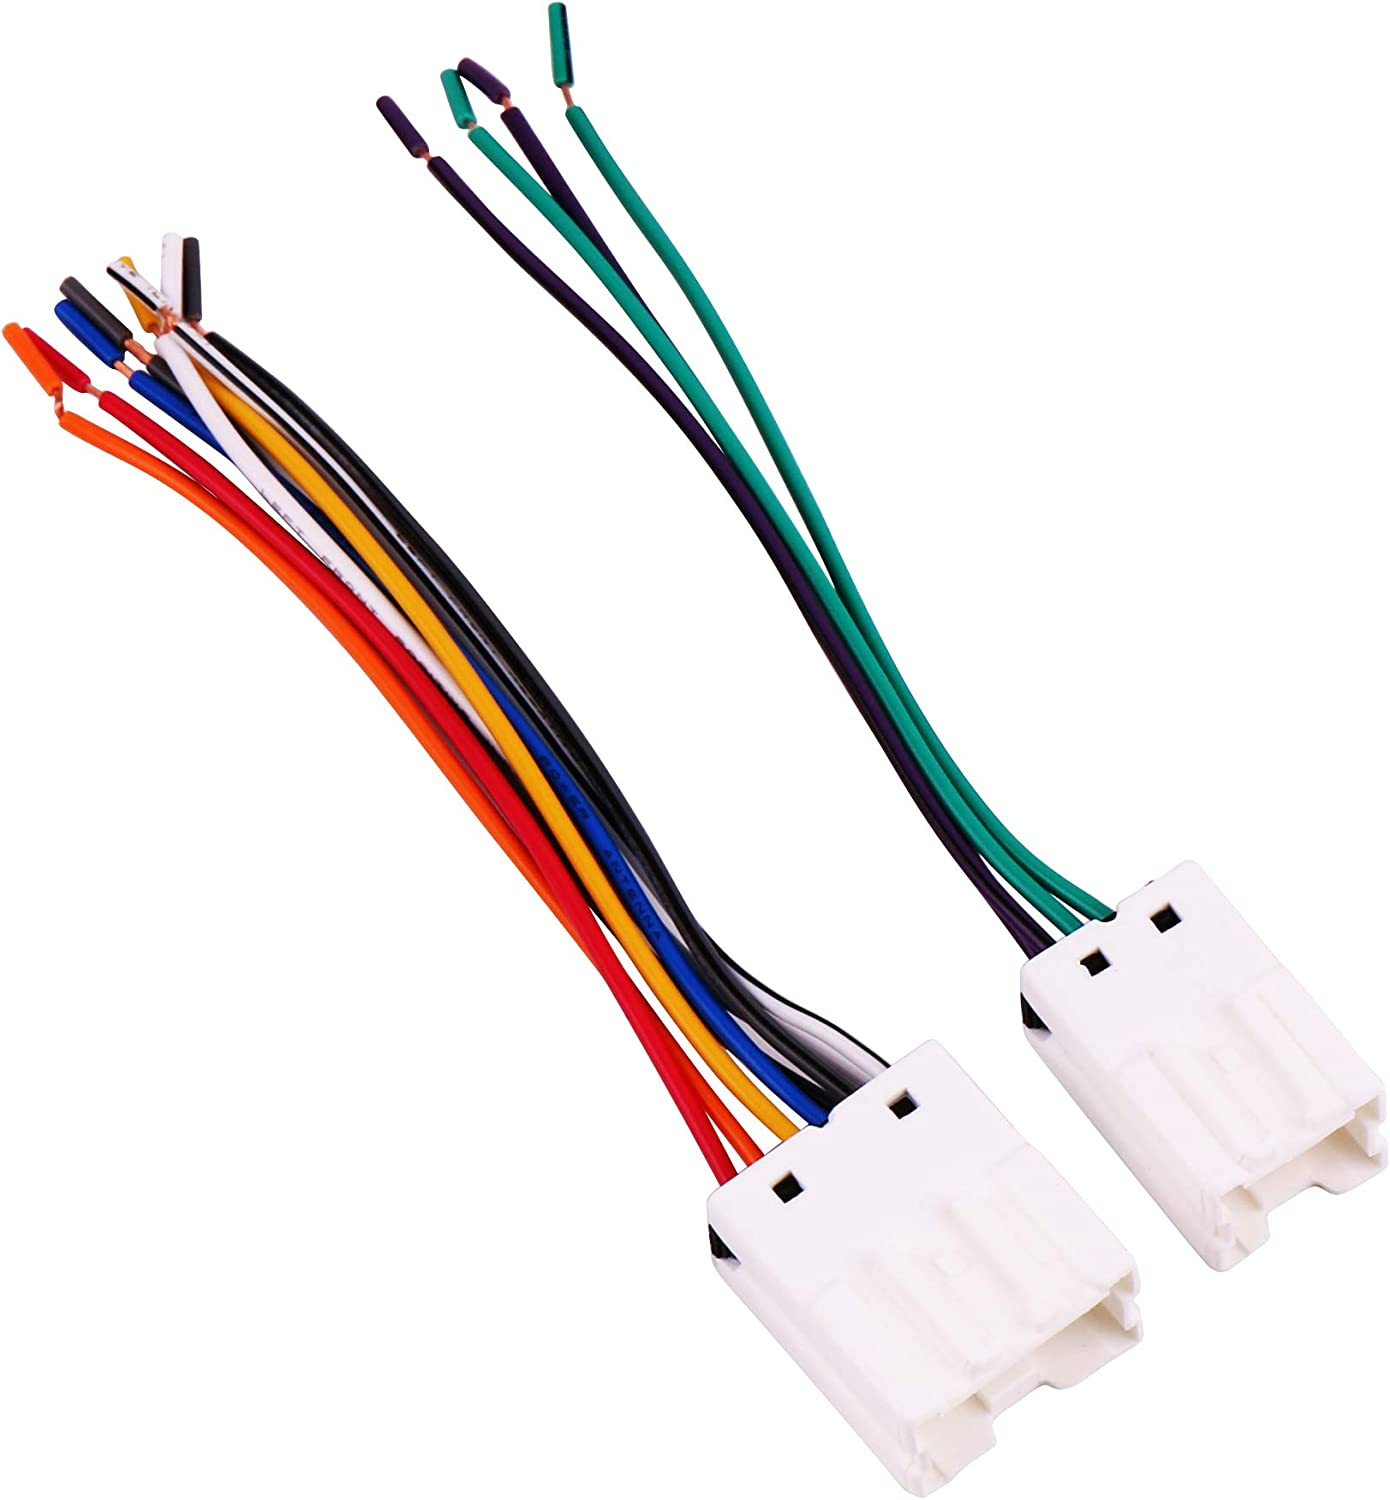 infiniti wiring harness | develop-seize the wiring diagram -  develop-seize.e-hipoteka.eu  e-hipoteka.eu